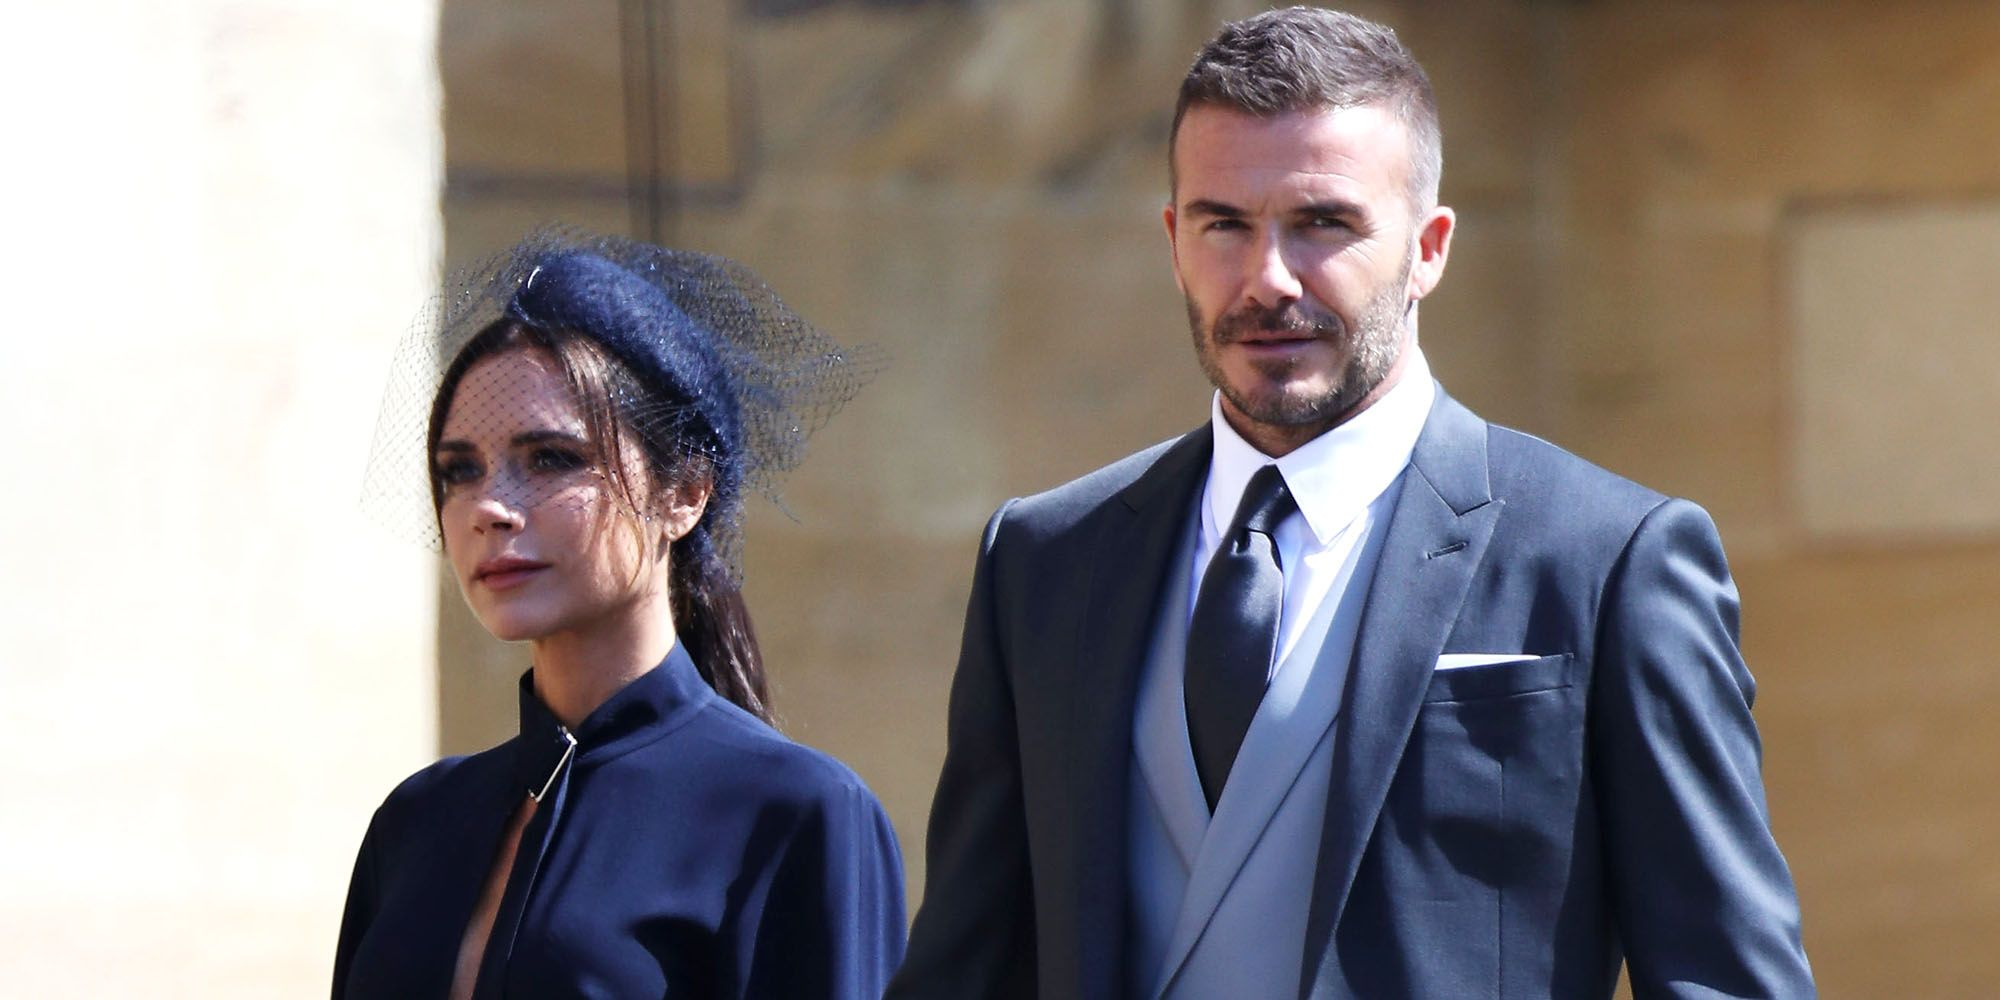 victoria beckham wore a ponytail to the royal wedding - victoria